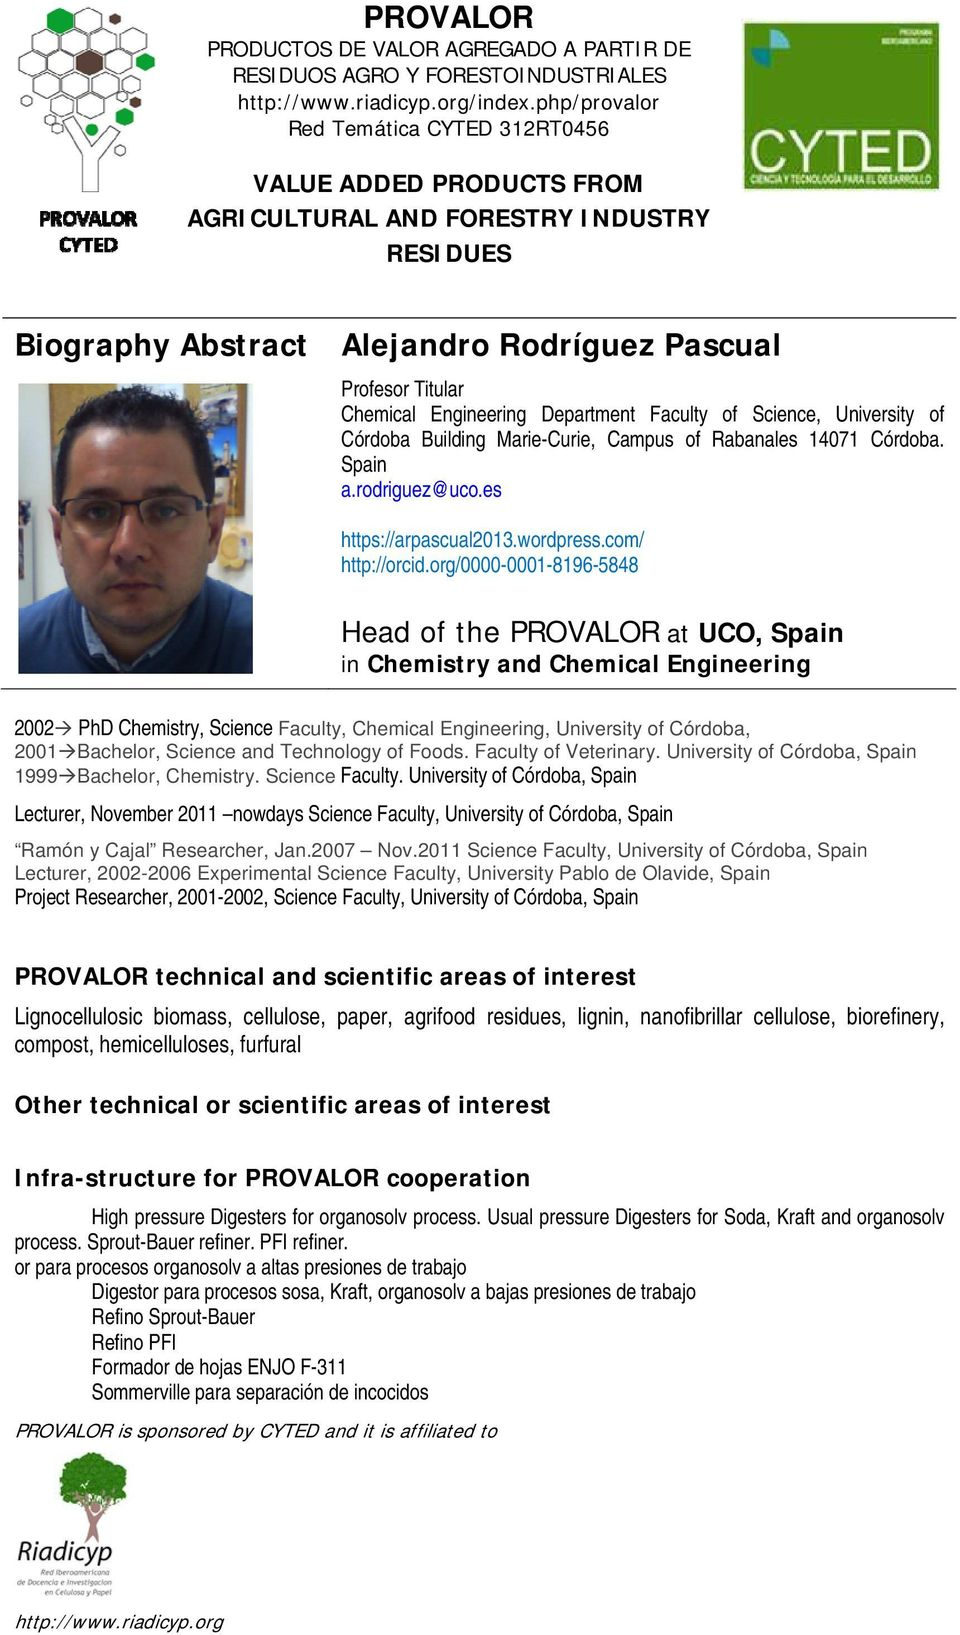 Department Faculty of Science, University of Córdoba Building Marie-Curie, Campus of Rabanales 14071 Córdoba. Spain a.rodriguez@uco.es https://arpascual2013.wordpress.com/ http://orcid.